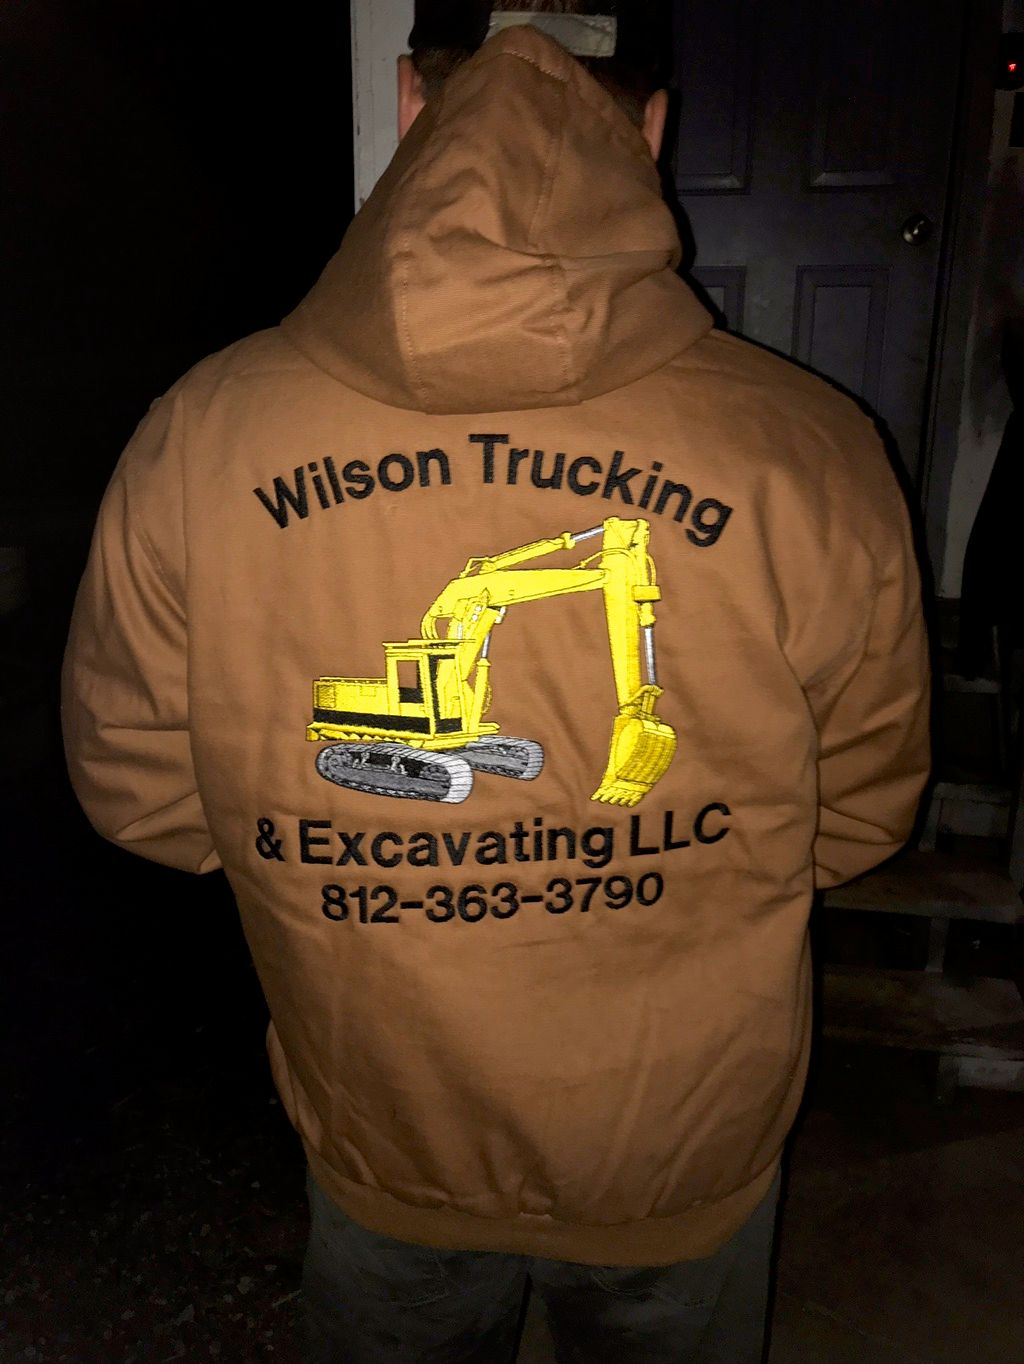 Wilson Trucking and Excavation LLC